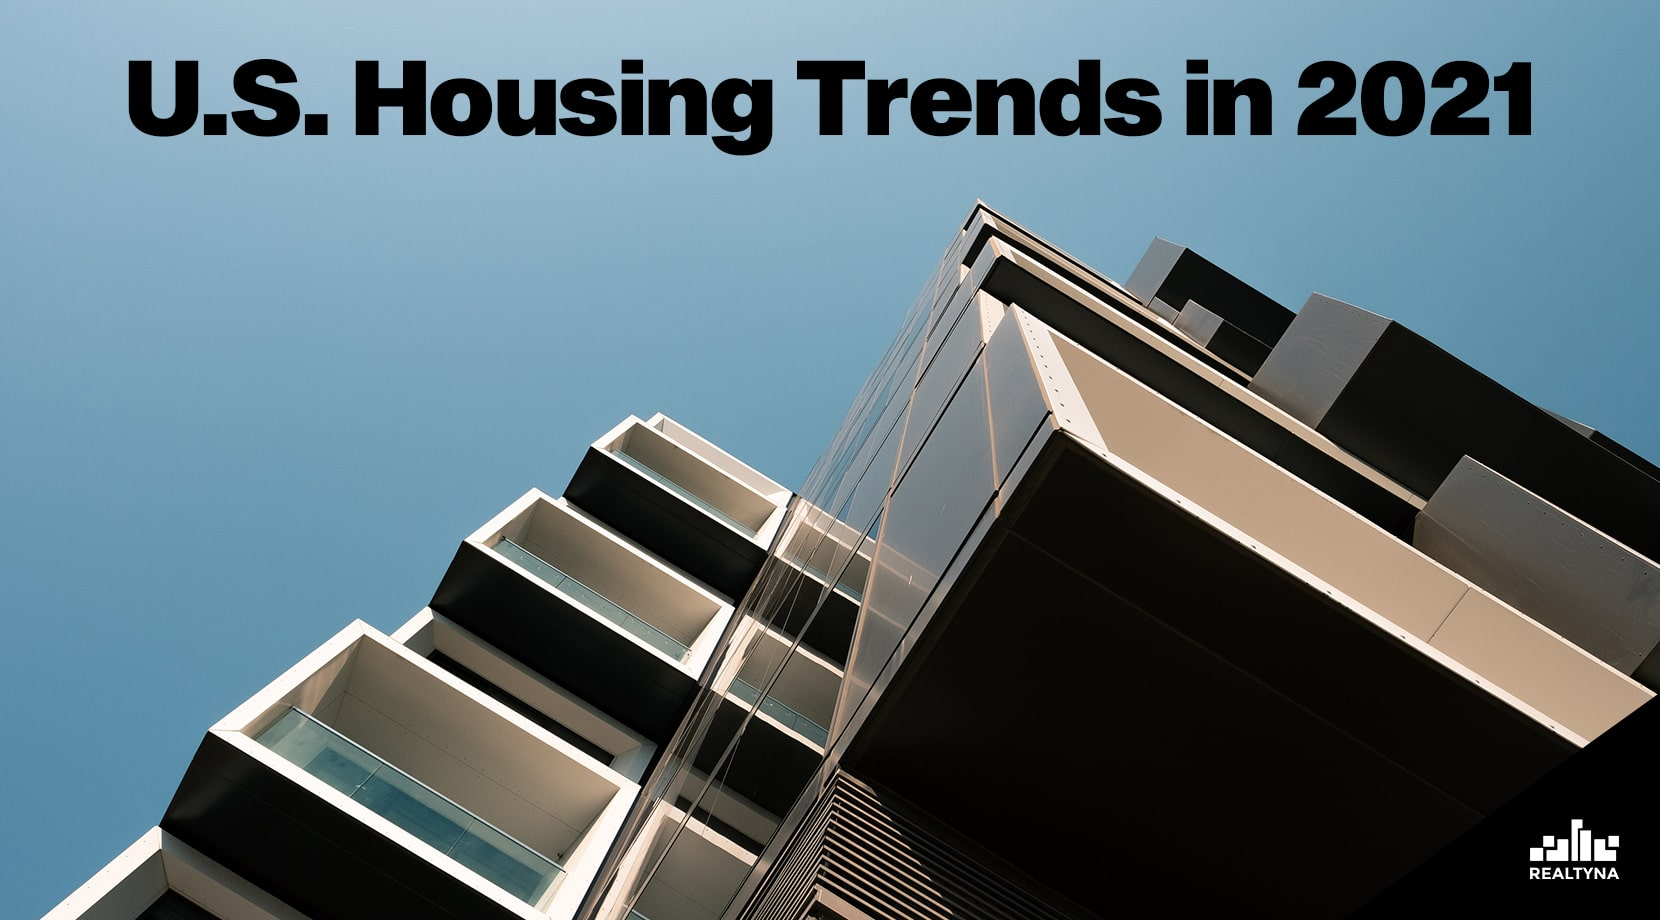 U.S. Housing Trends in 2021